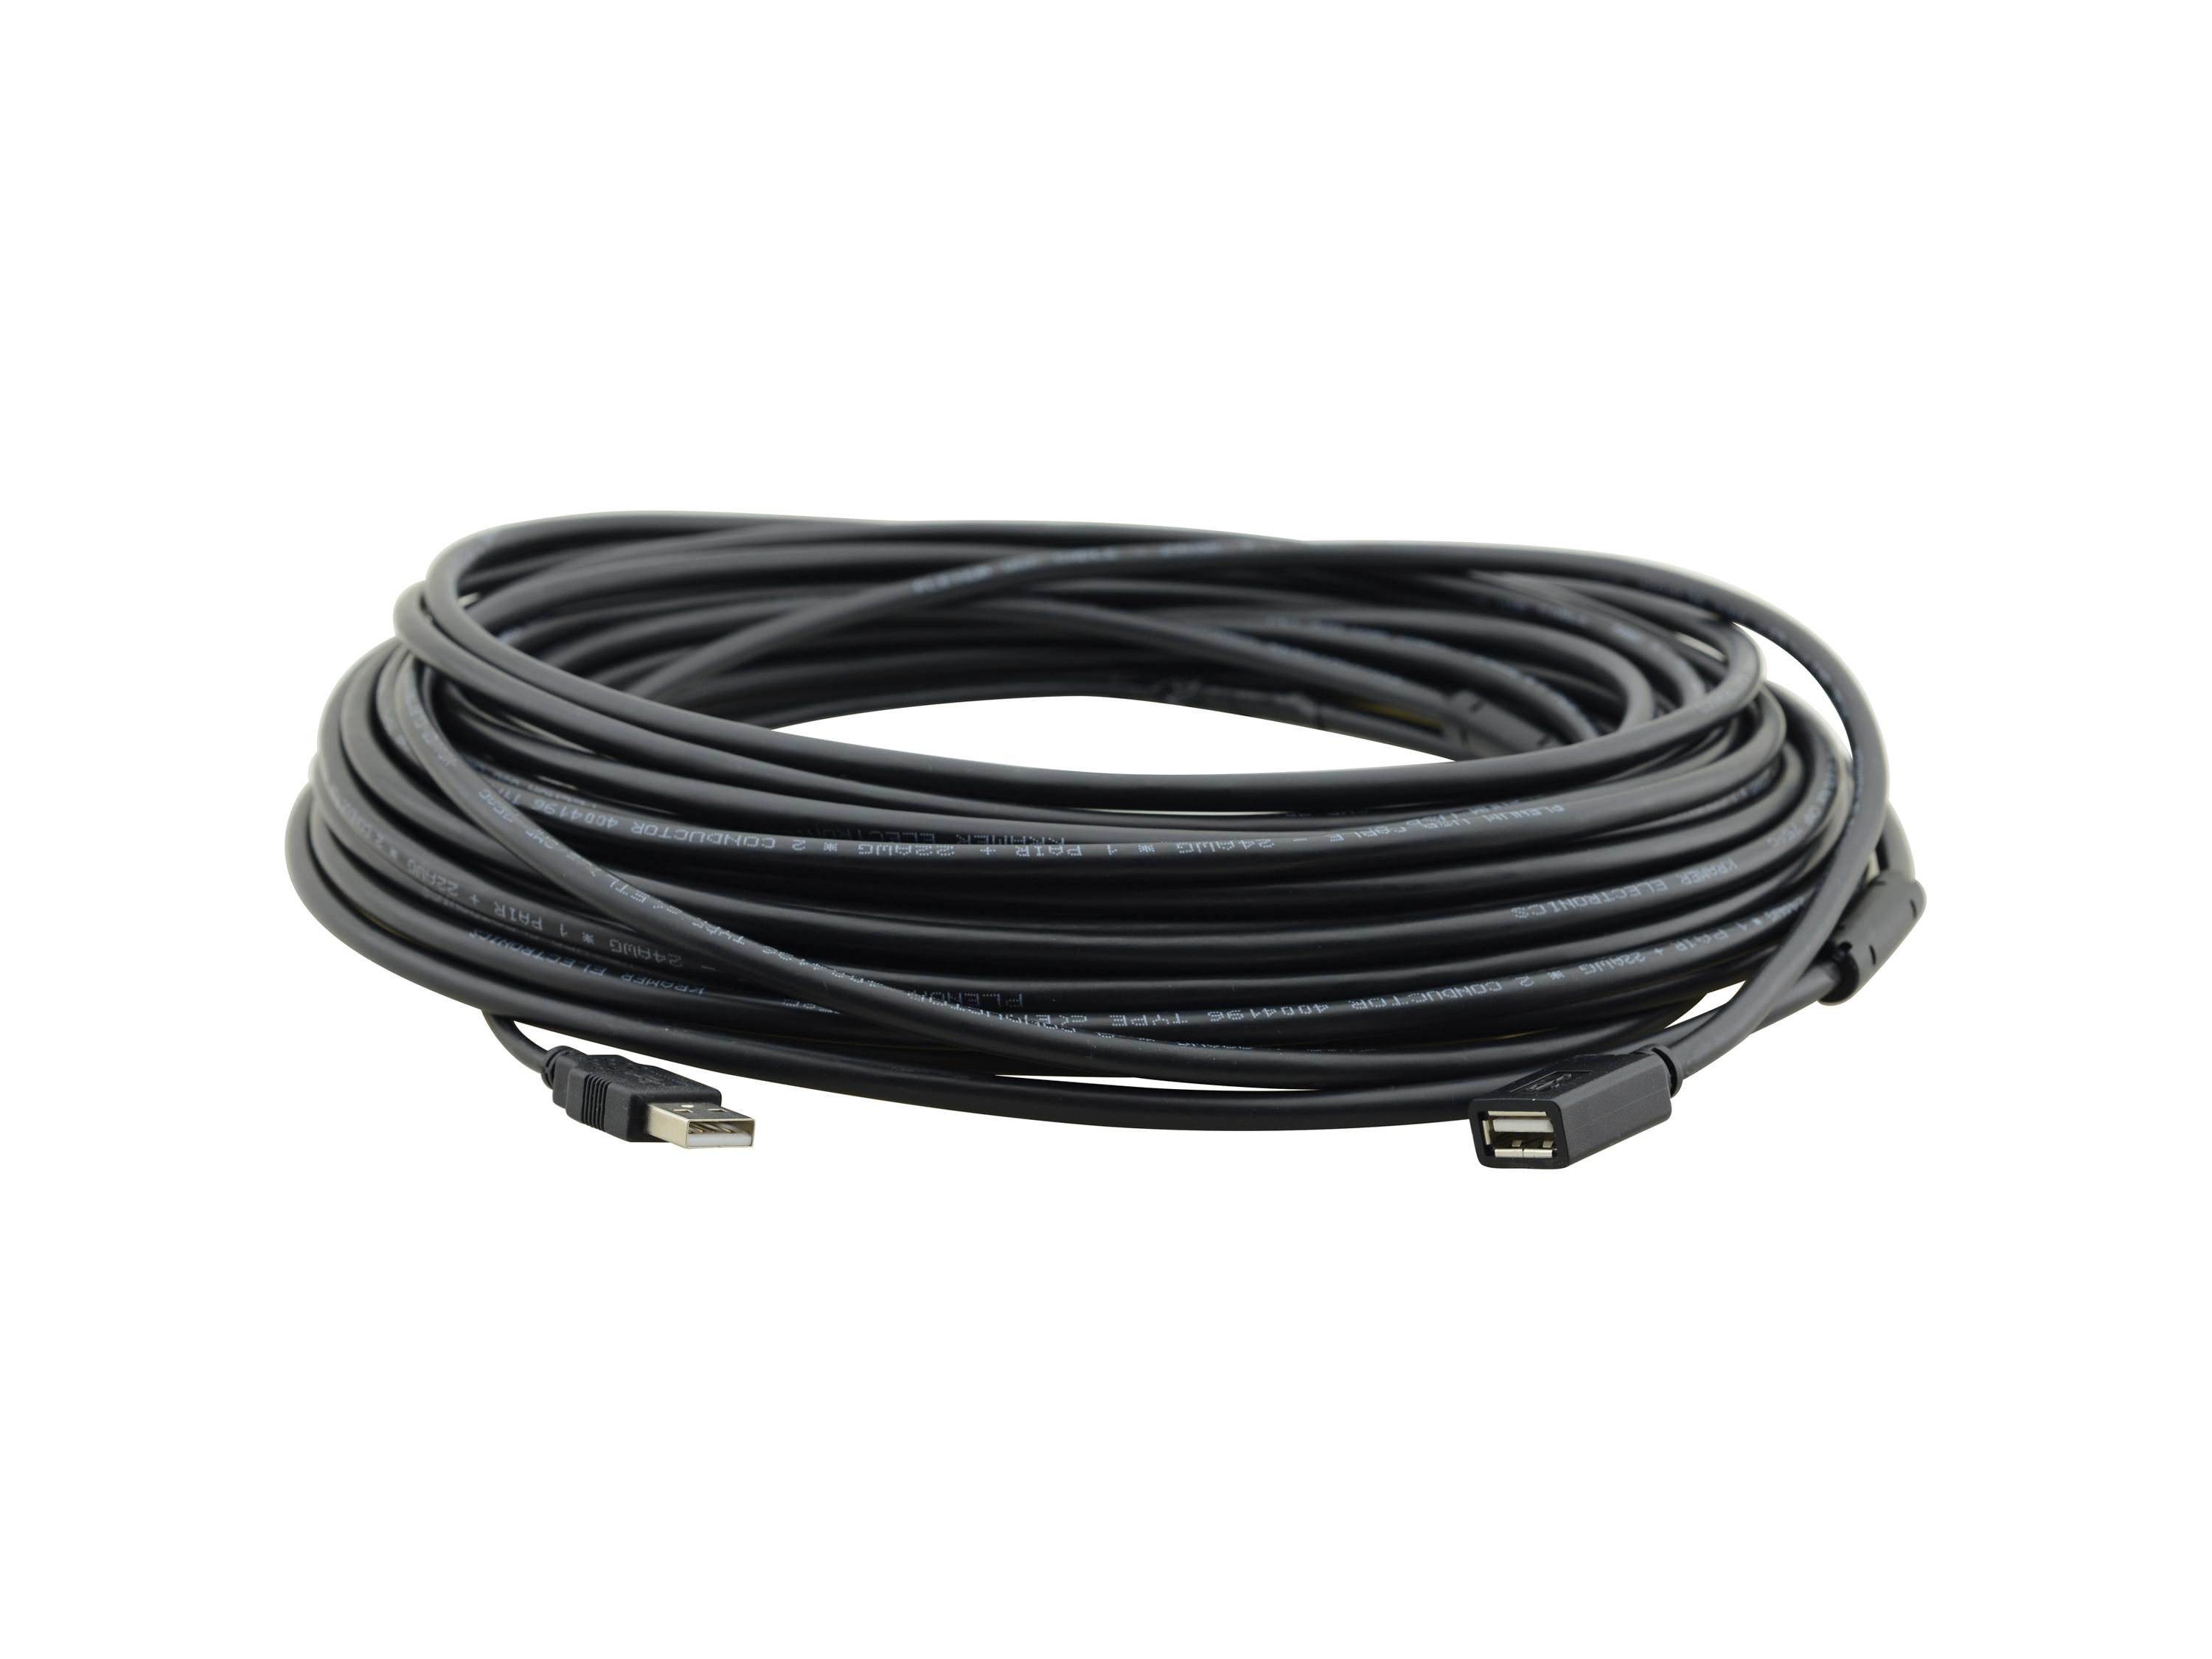 CA-UAM/UAF-65 USB Active Extender Cable - 65ft by Kramer